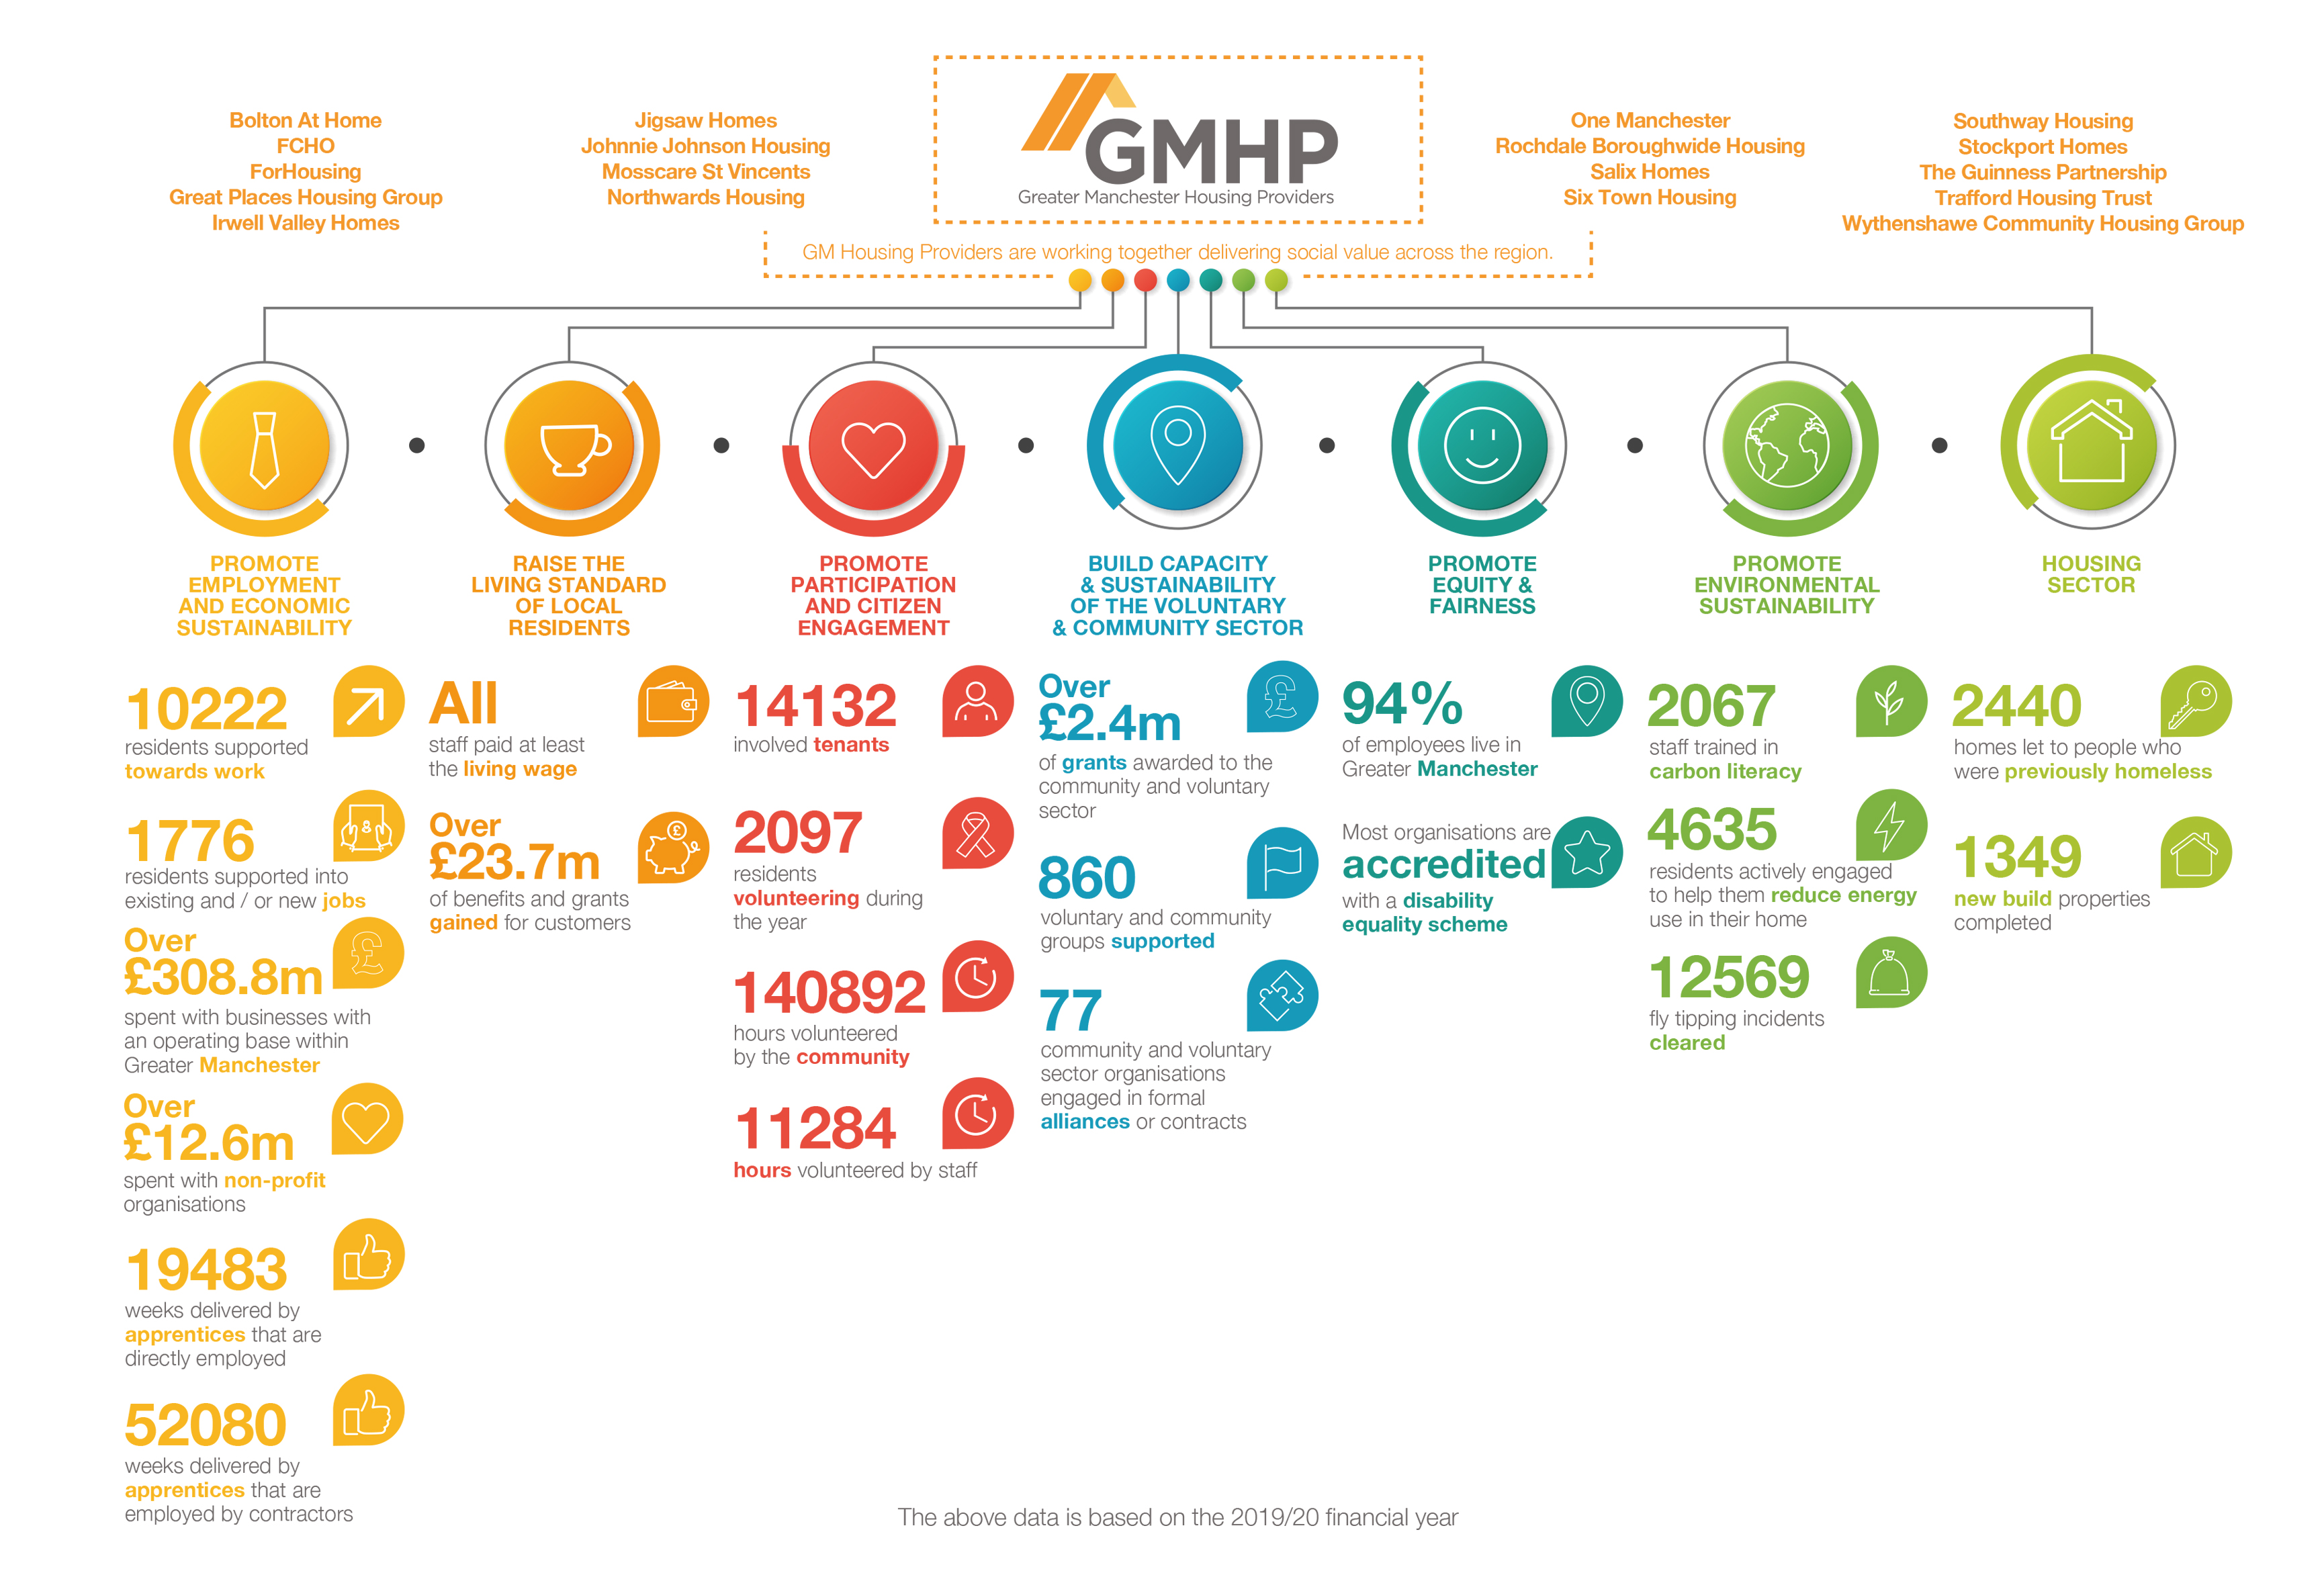 Image of the GMHP social value impact graphic.